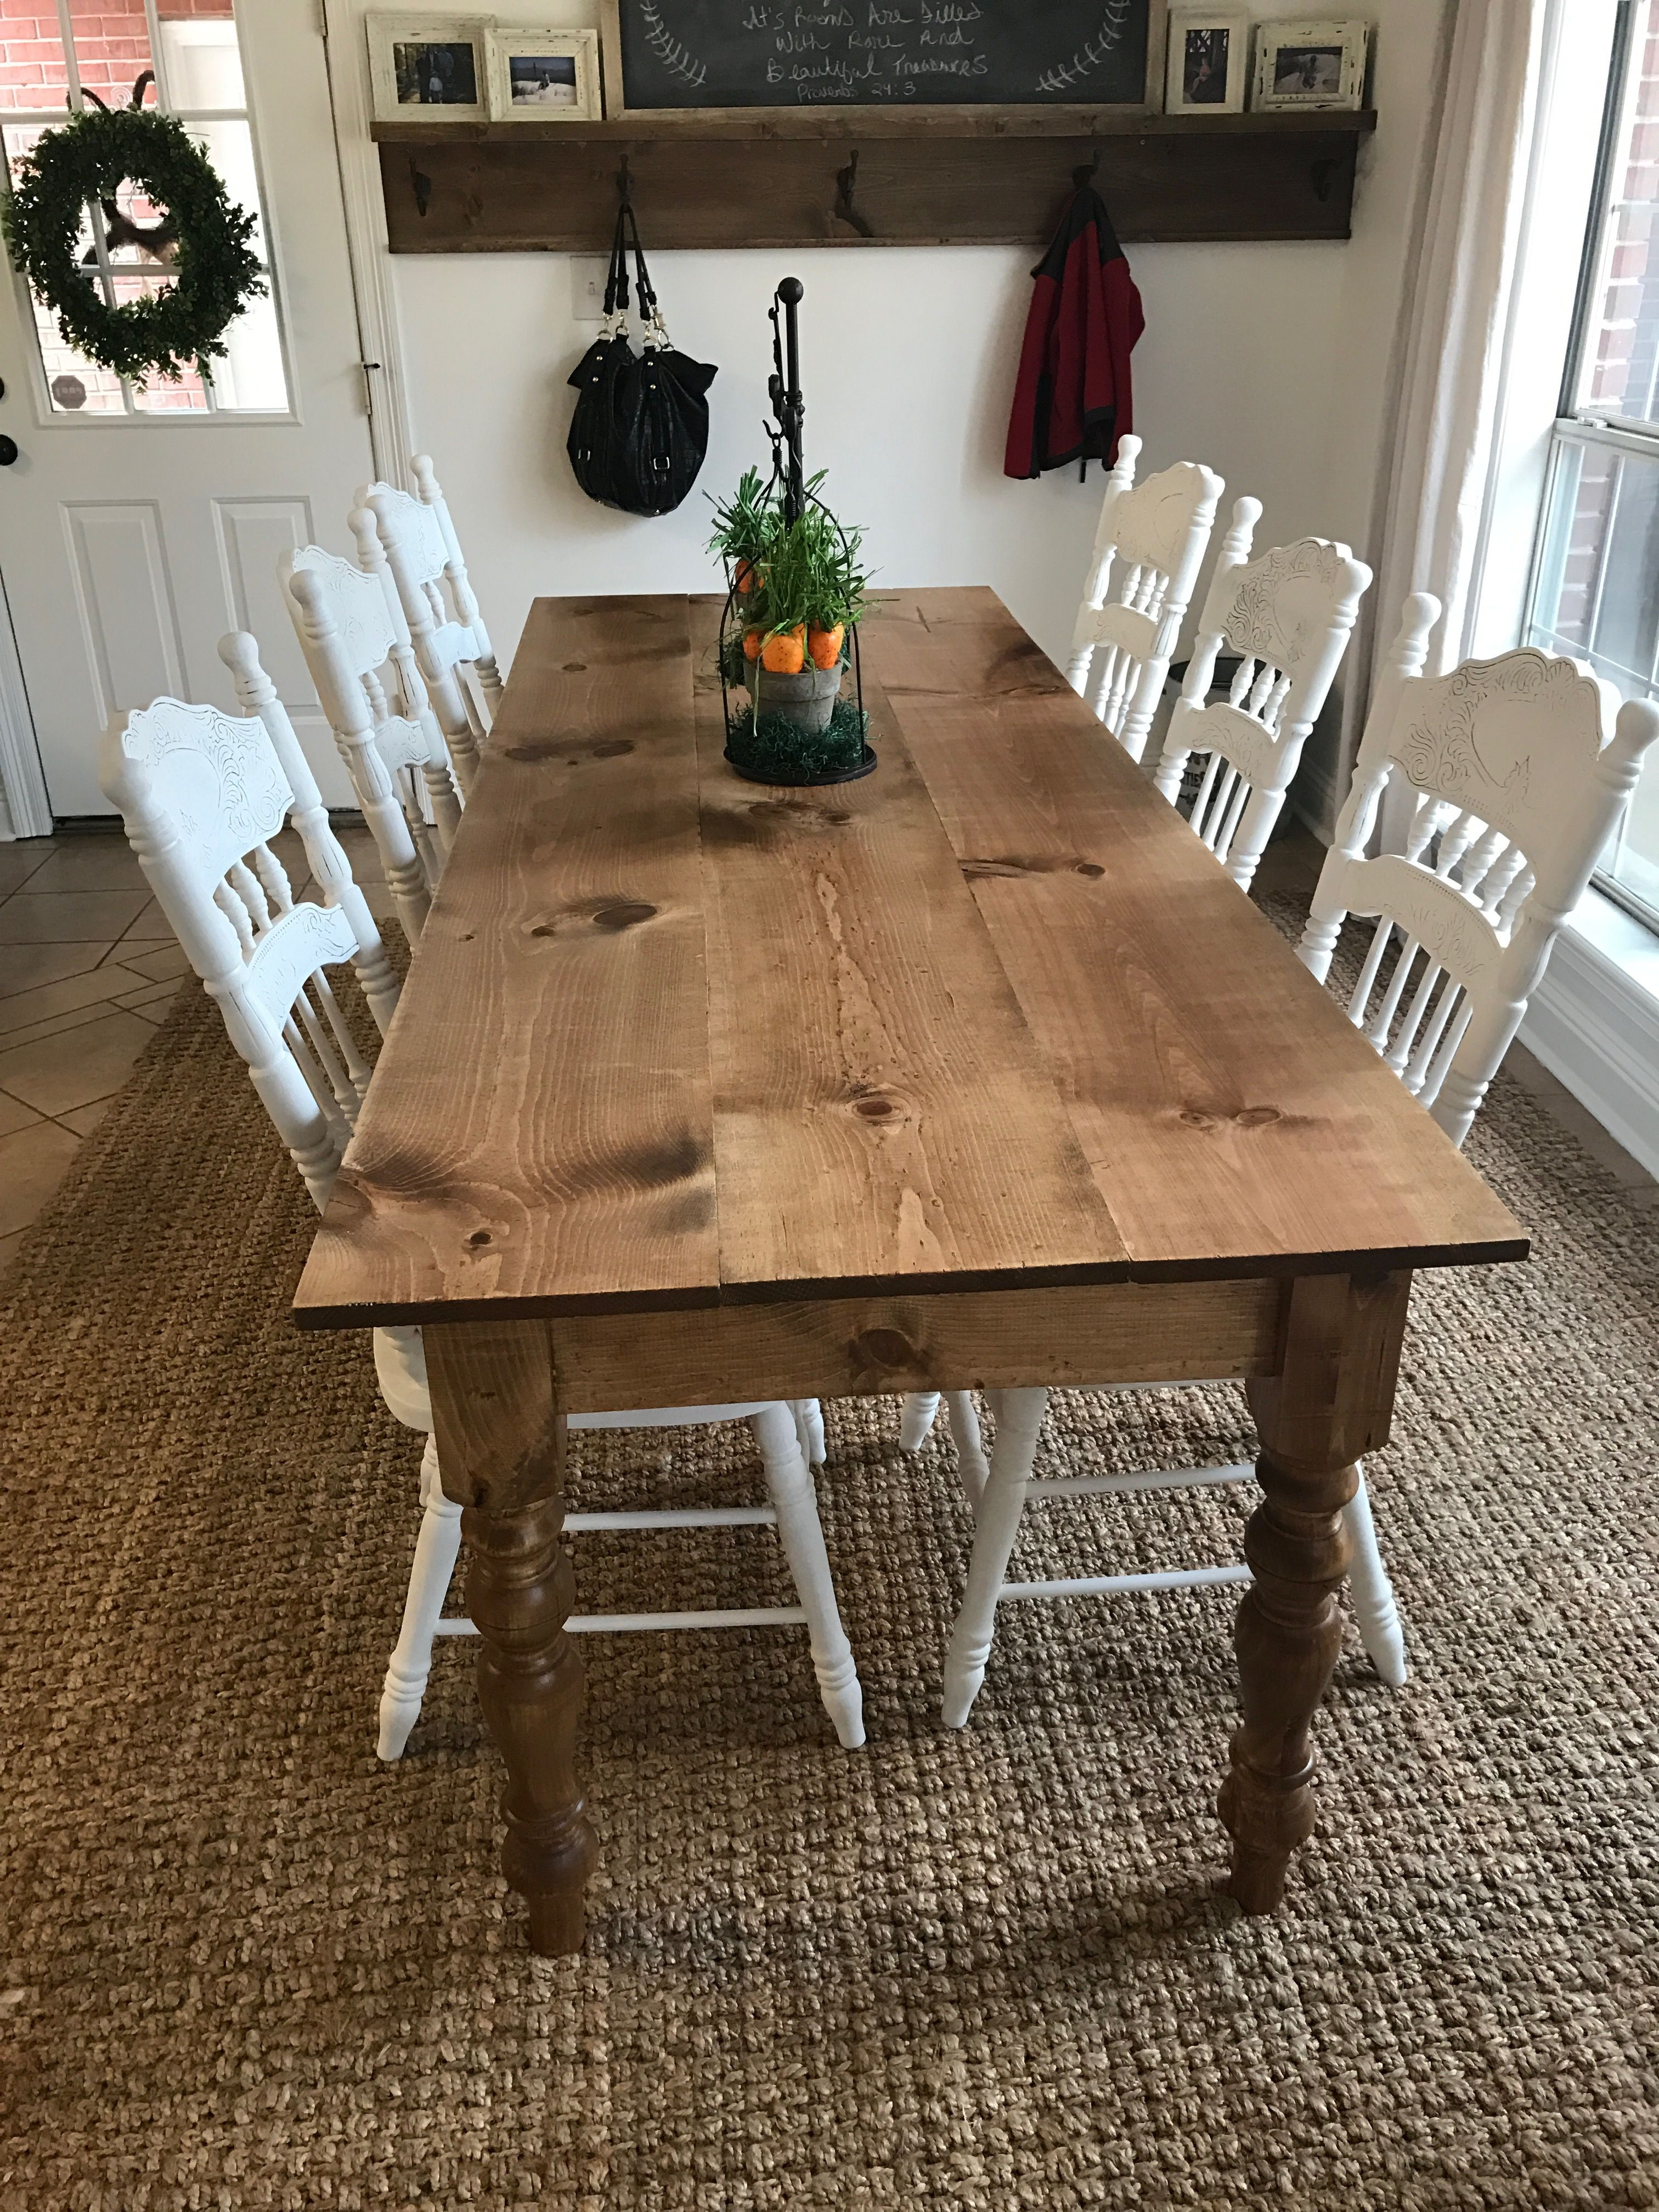 Diy Long Skinny Farmhouse Table 8ft Long 34 Wide 3 5 Legs And 5 5 Aprons Used Mi Diy Dining Room Table Farmhouse Dining Room Table Dining Table Design